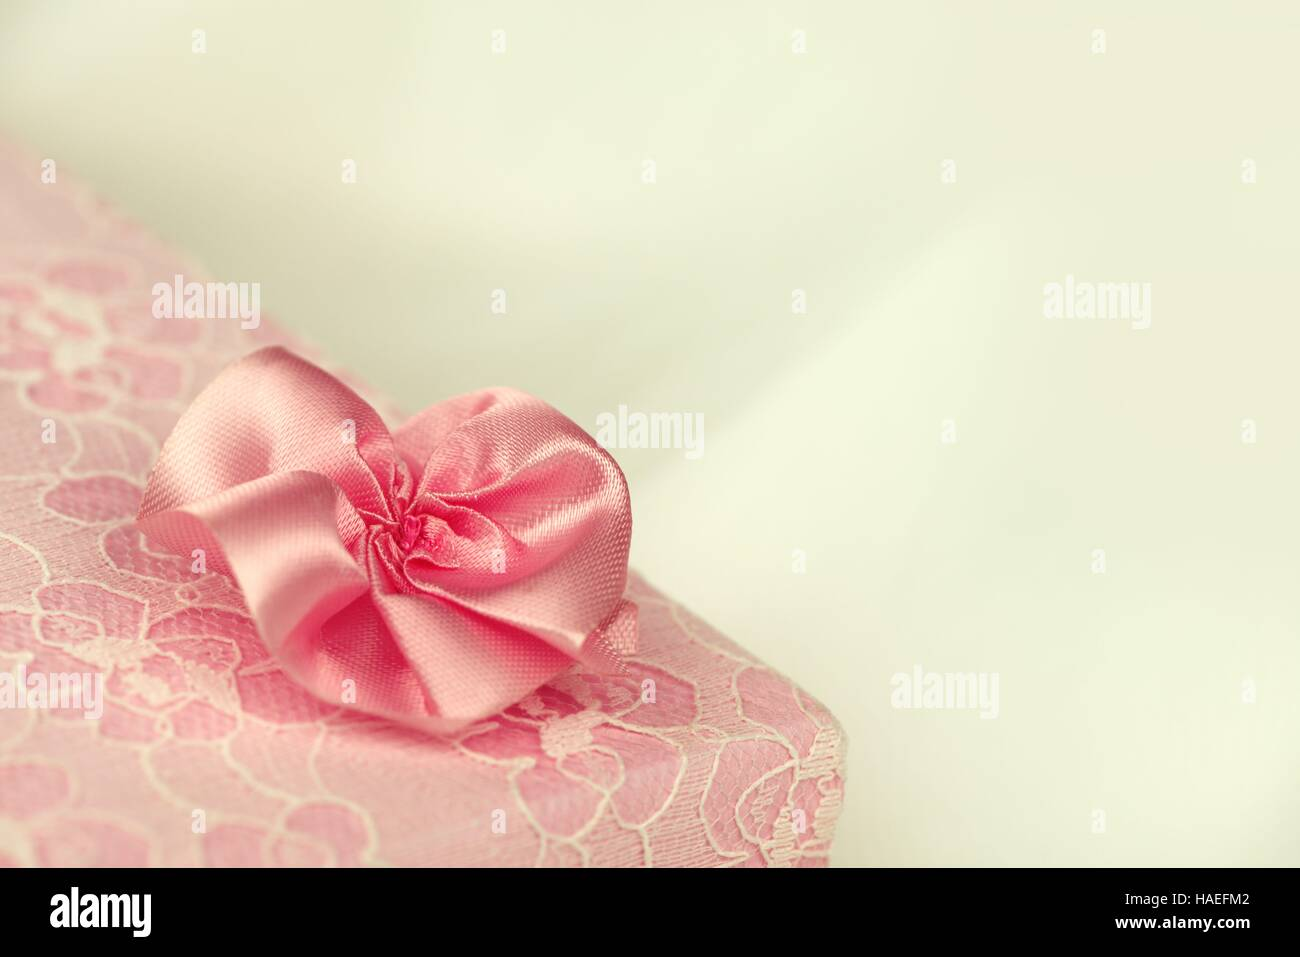 Pink lace gift box with a flower and floral ornament - Stock Image